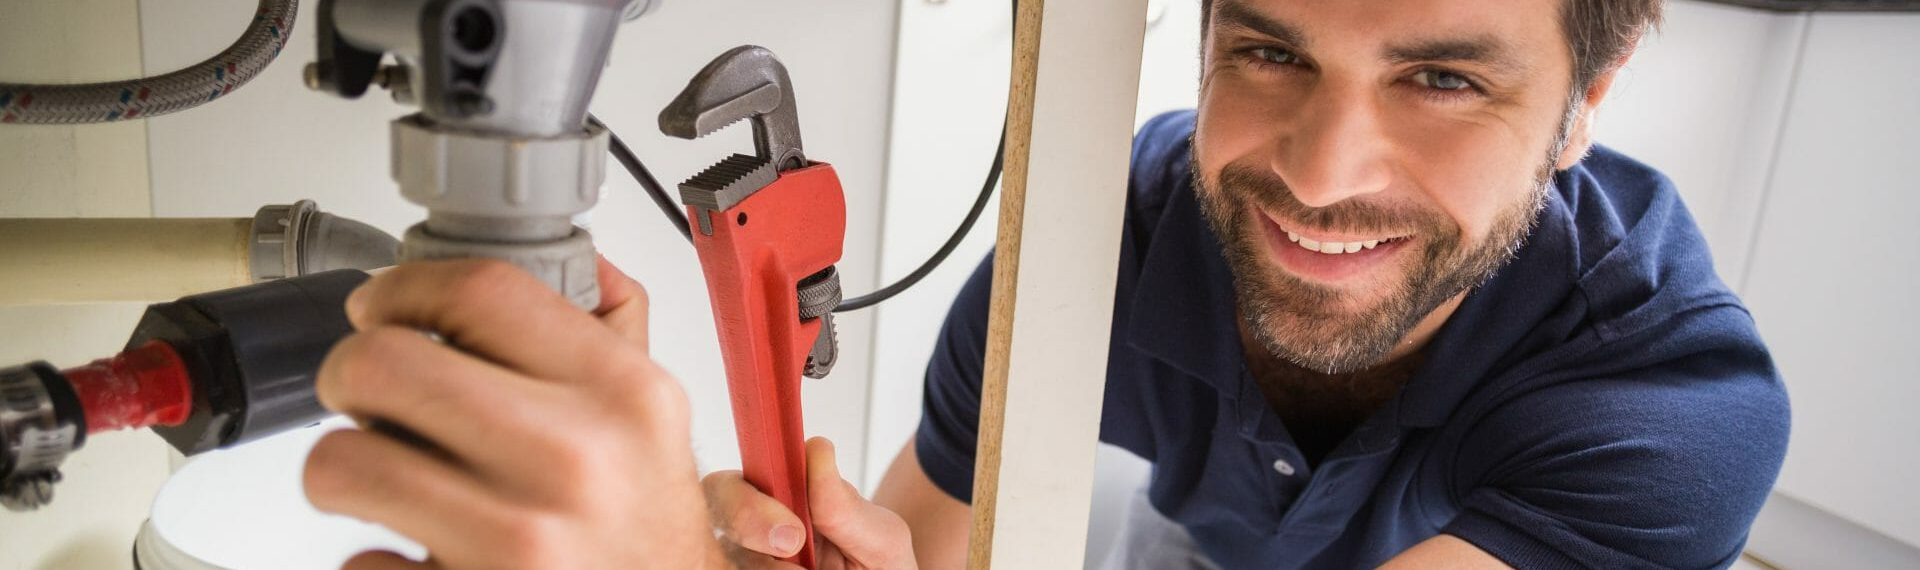 smiling plumber fixing a sink